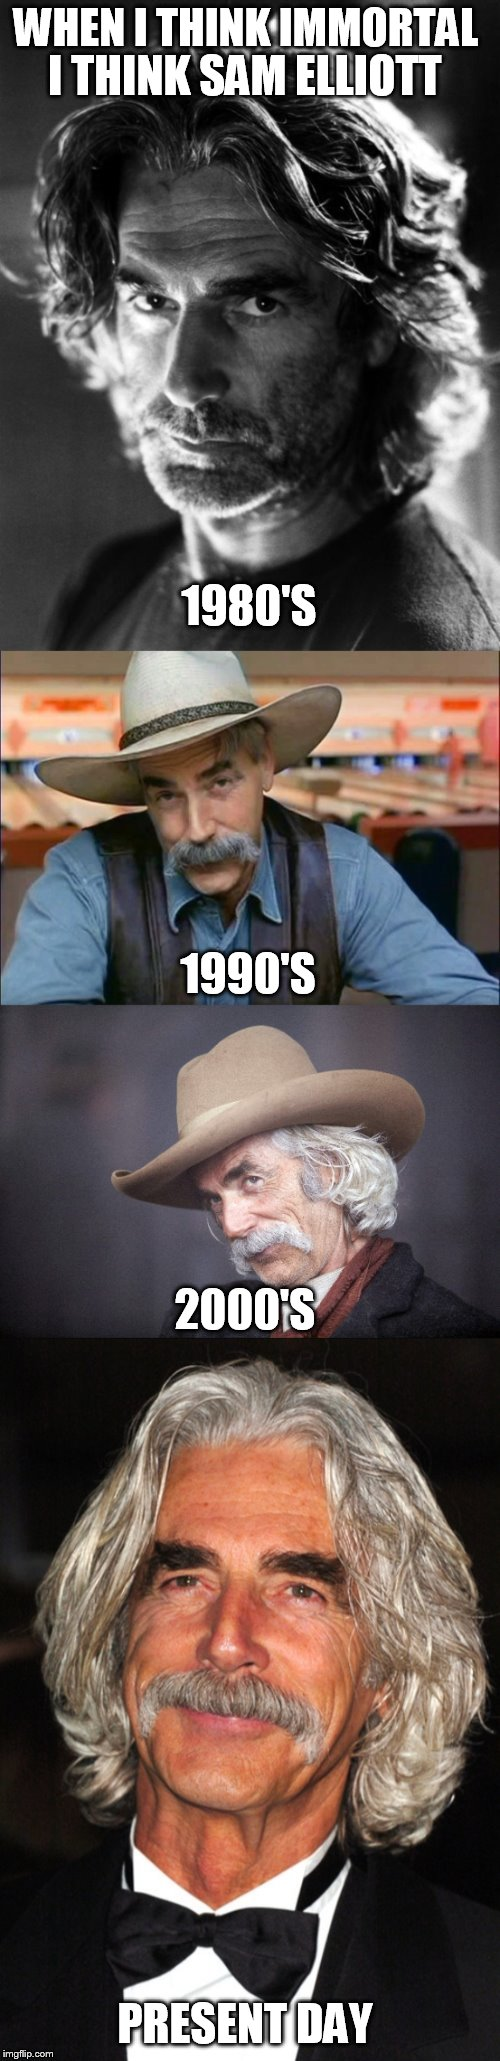 1bqugn sam elliott seems immortal to me! imgflip,Sam Elliott Memes